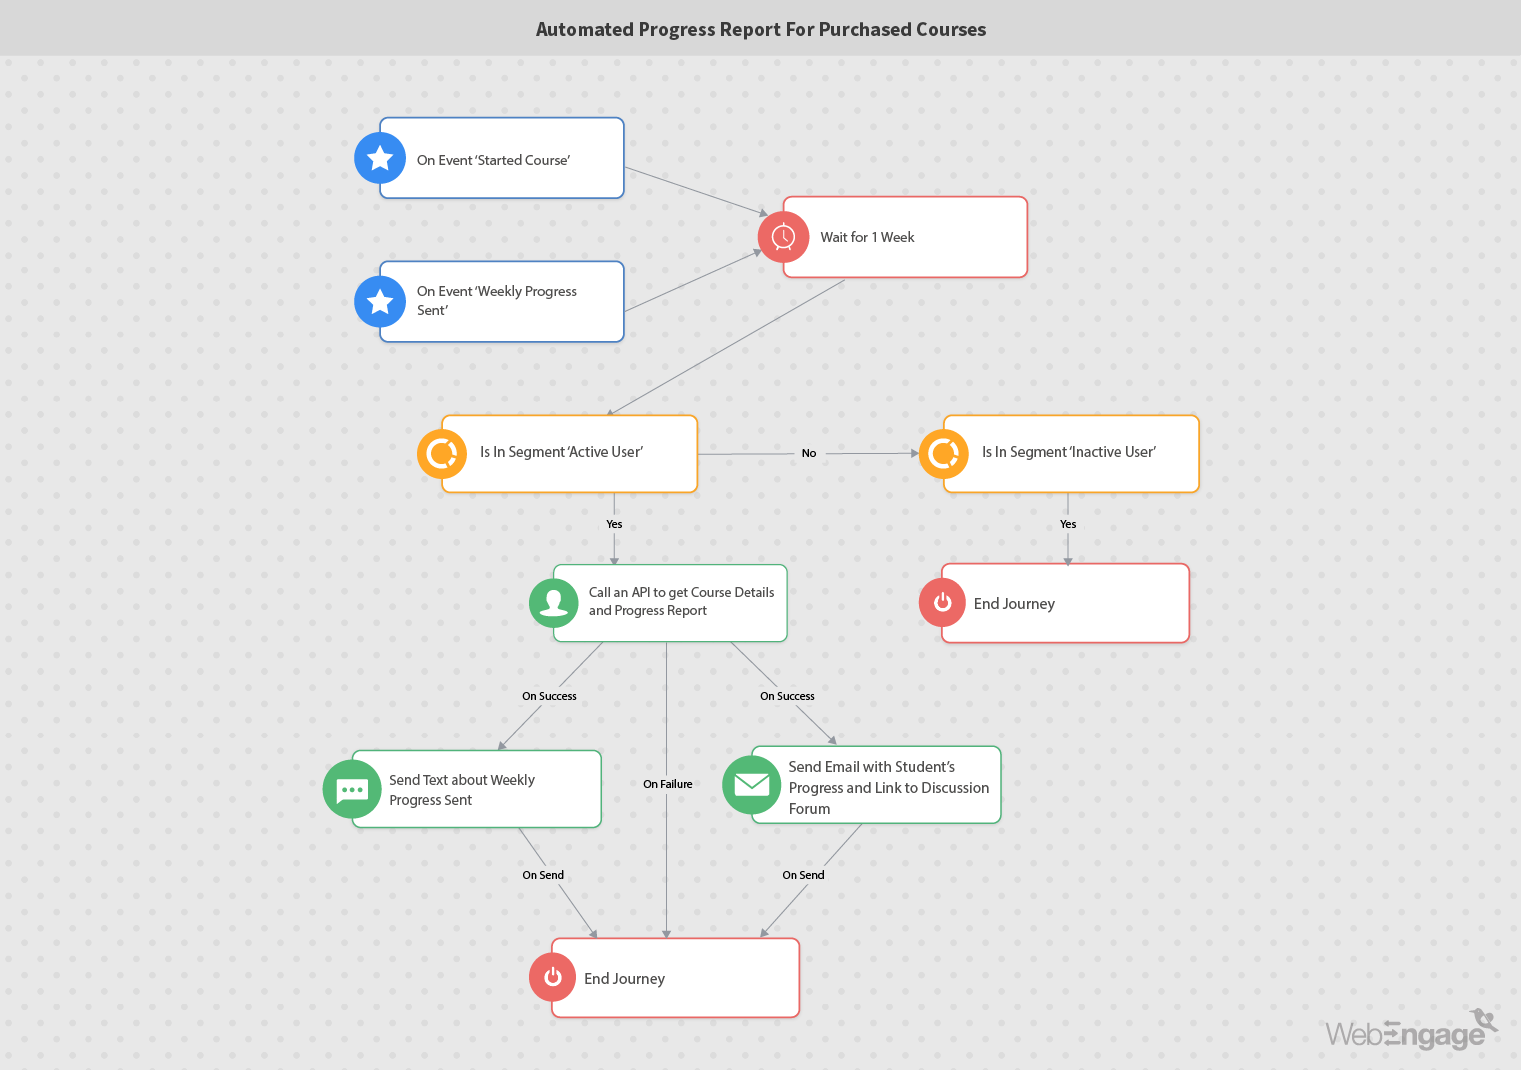 Marketing automation workflow for sending progress reports for purchased courses